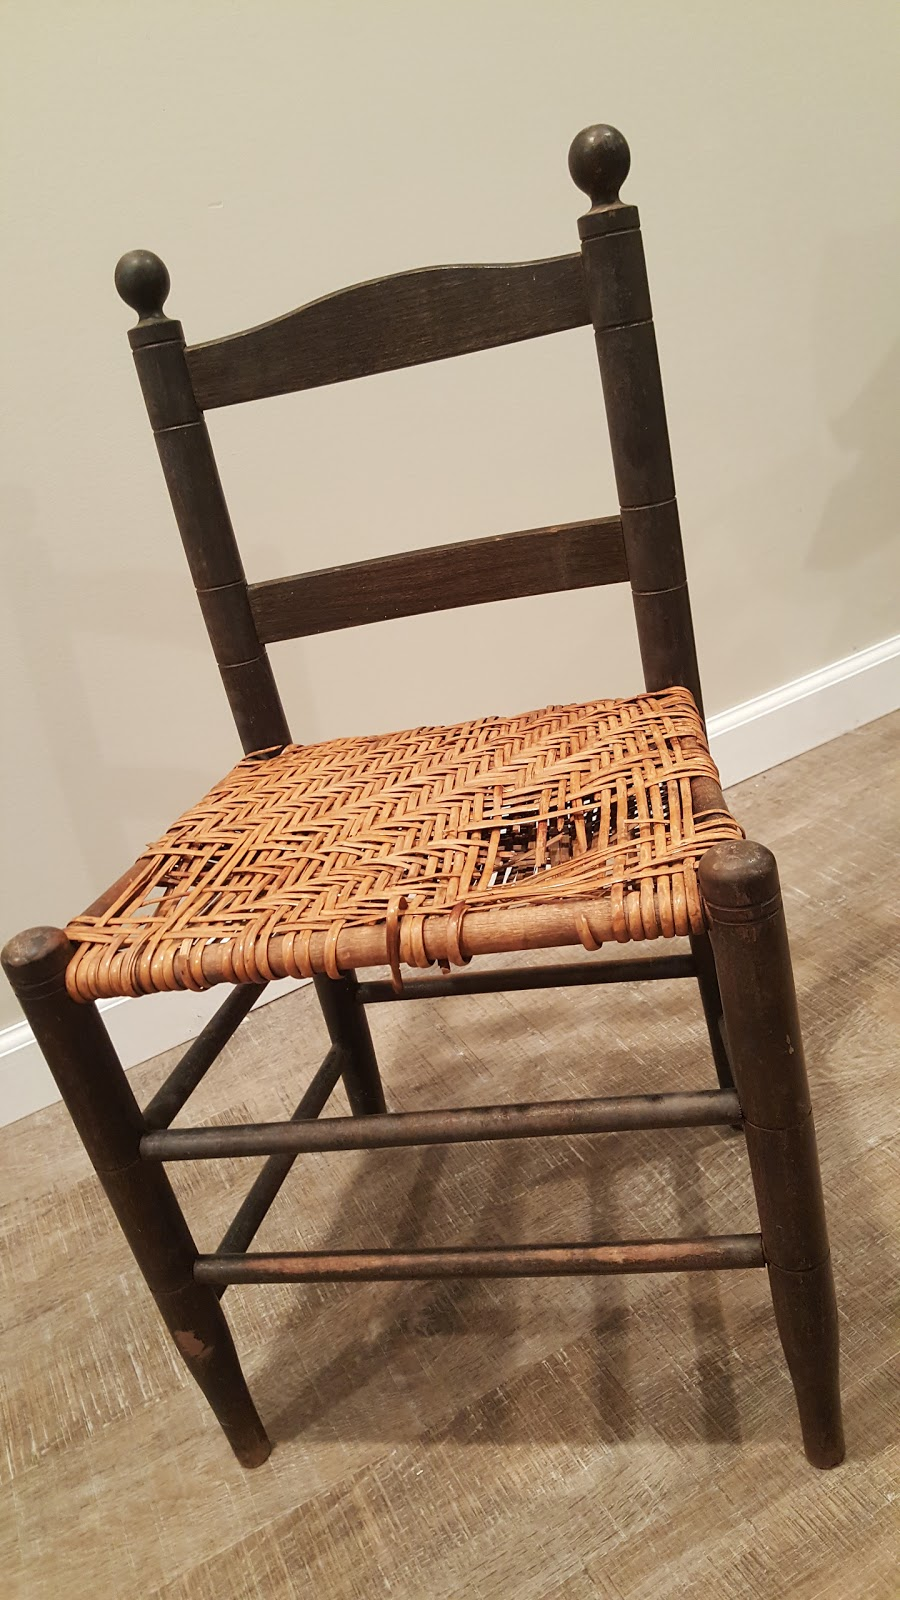 How to restore a vintage childu0027s chair & dawnToussaint: How to restore a vintage childu0027s chair